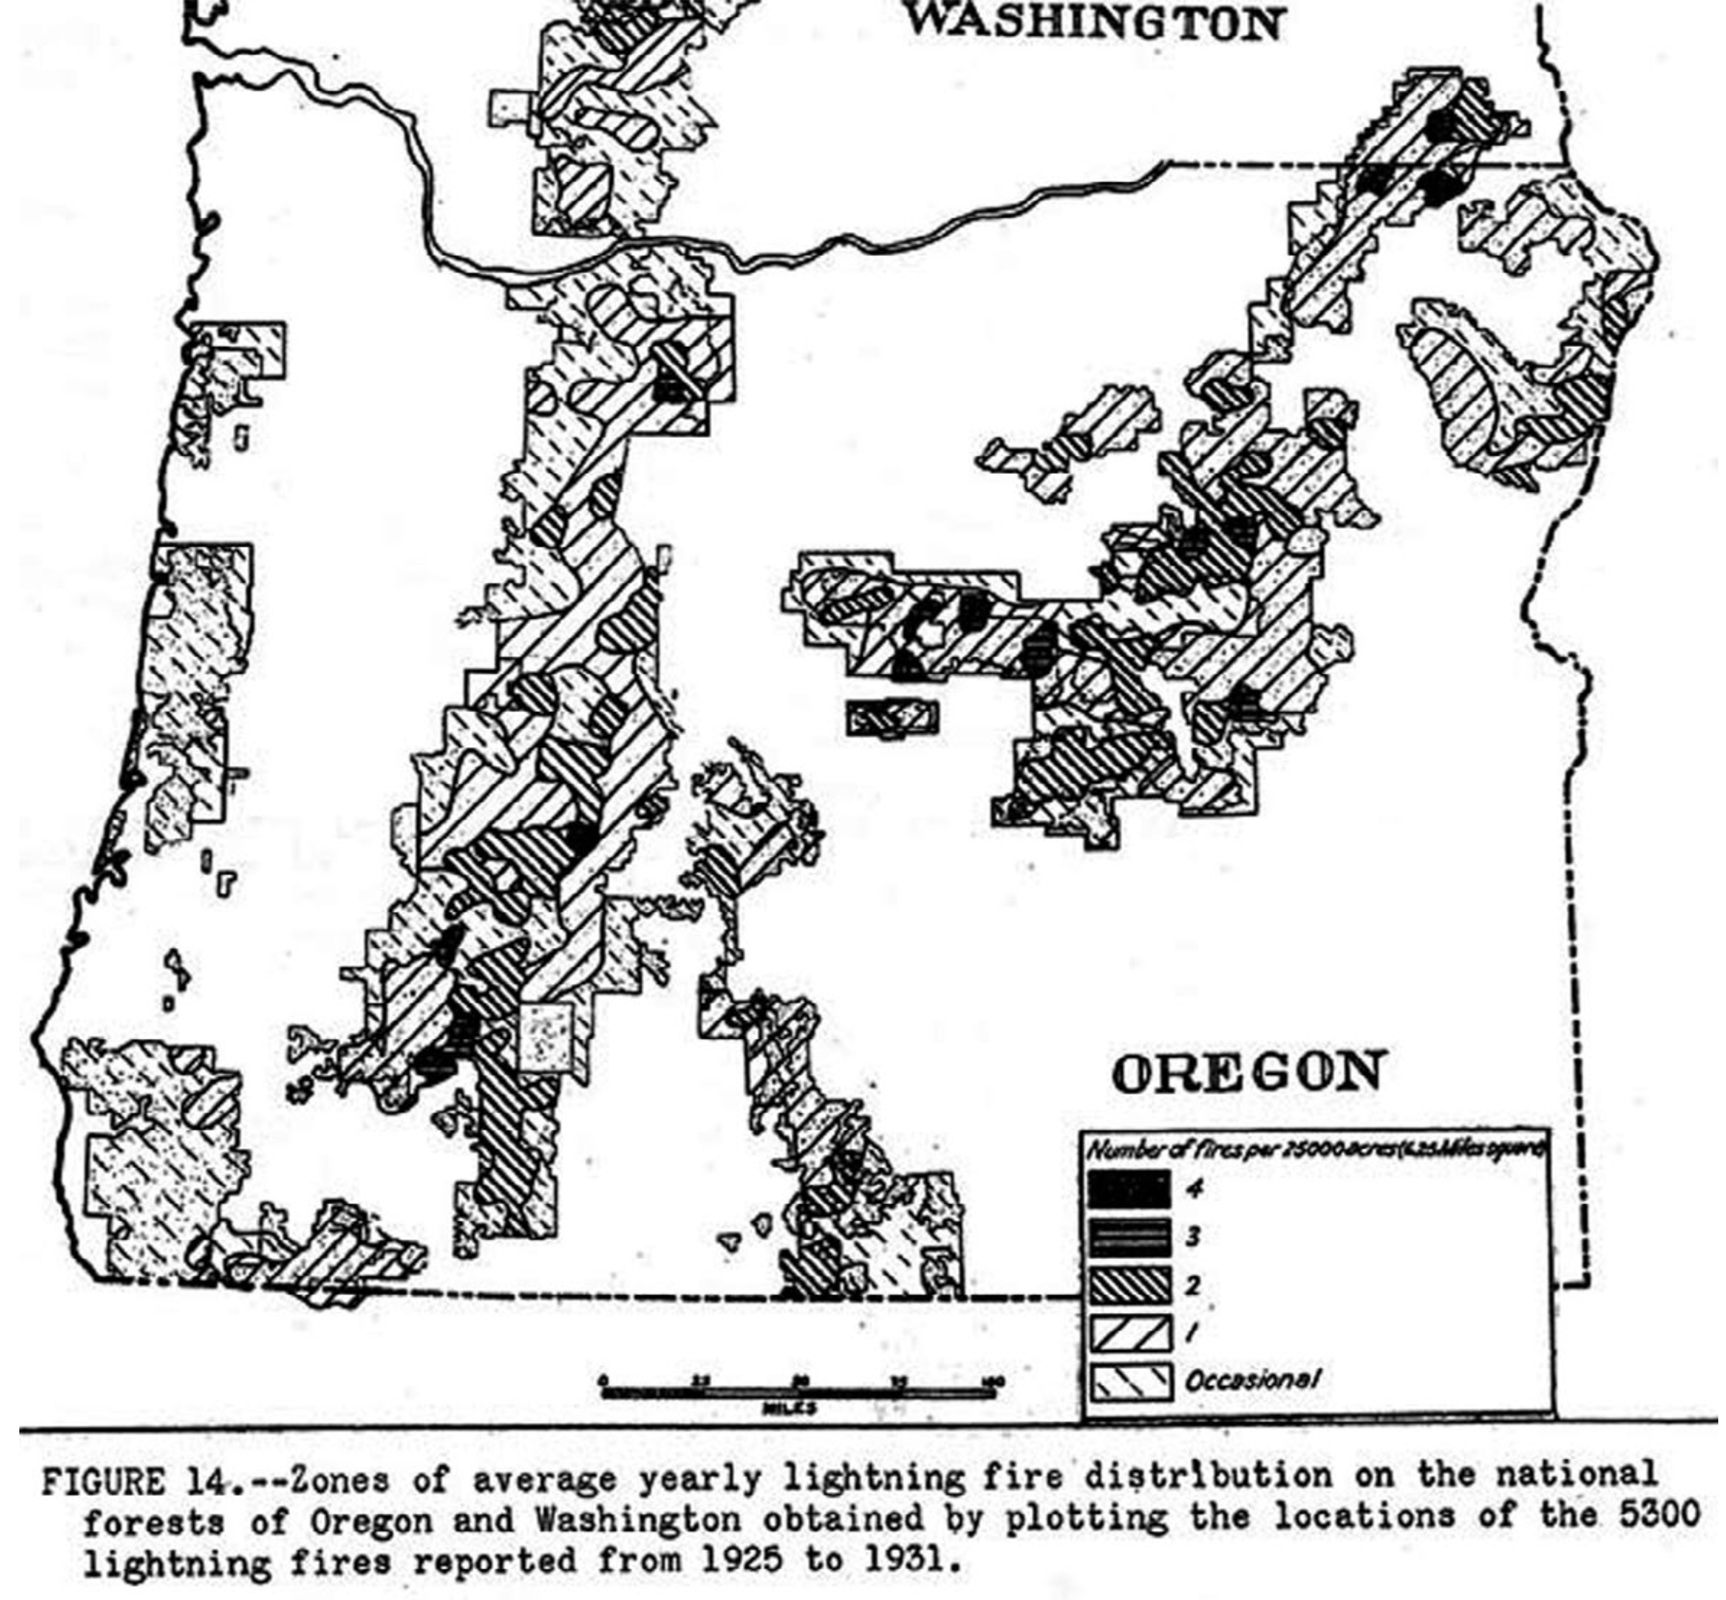 NW Maps Co.: Zybach Presentation: Oregon Wildfires, August